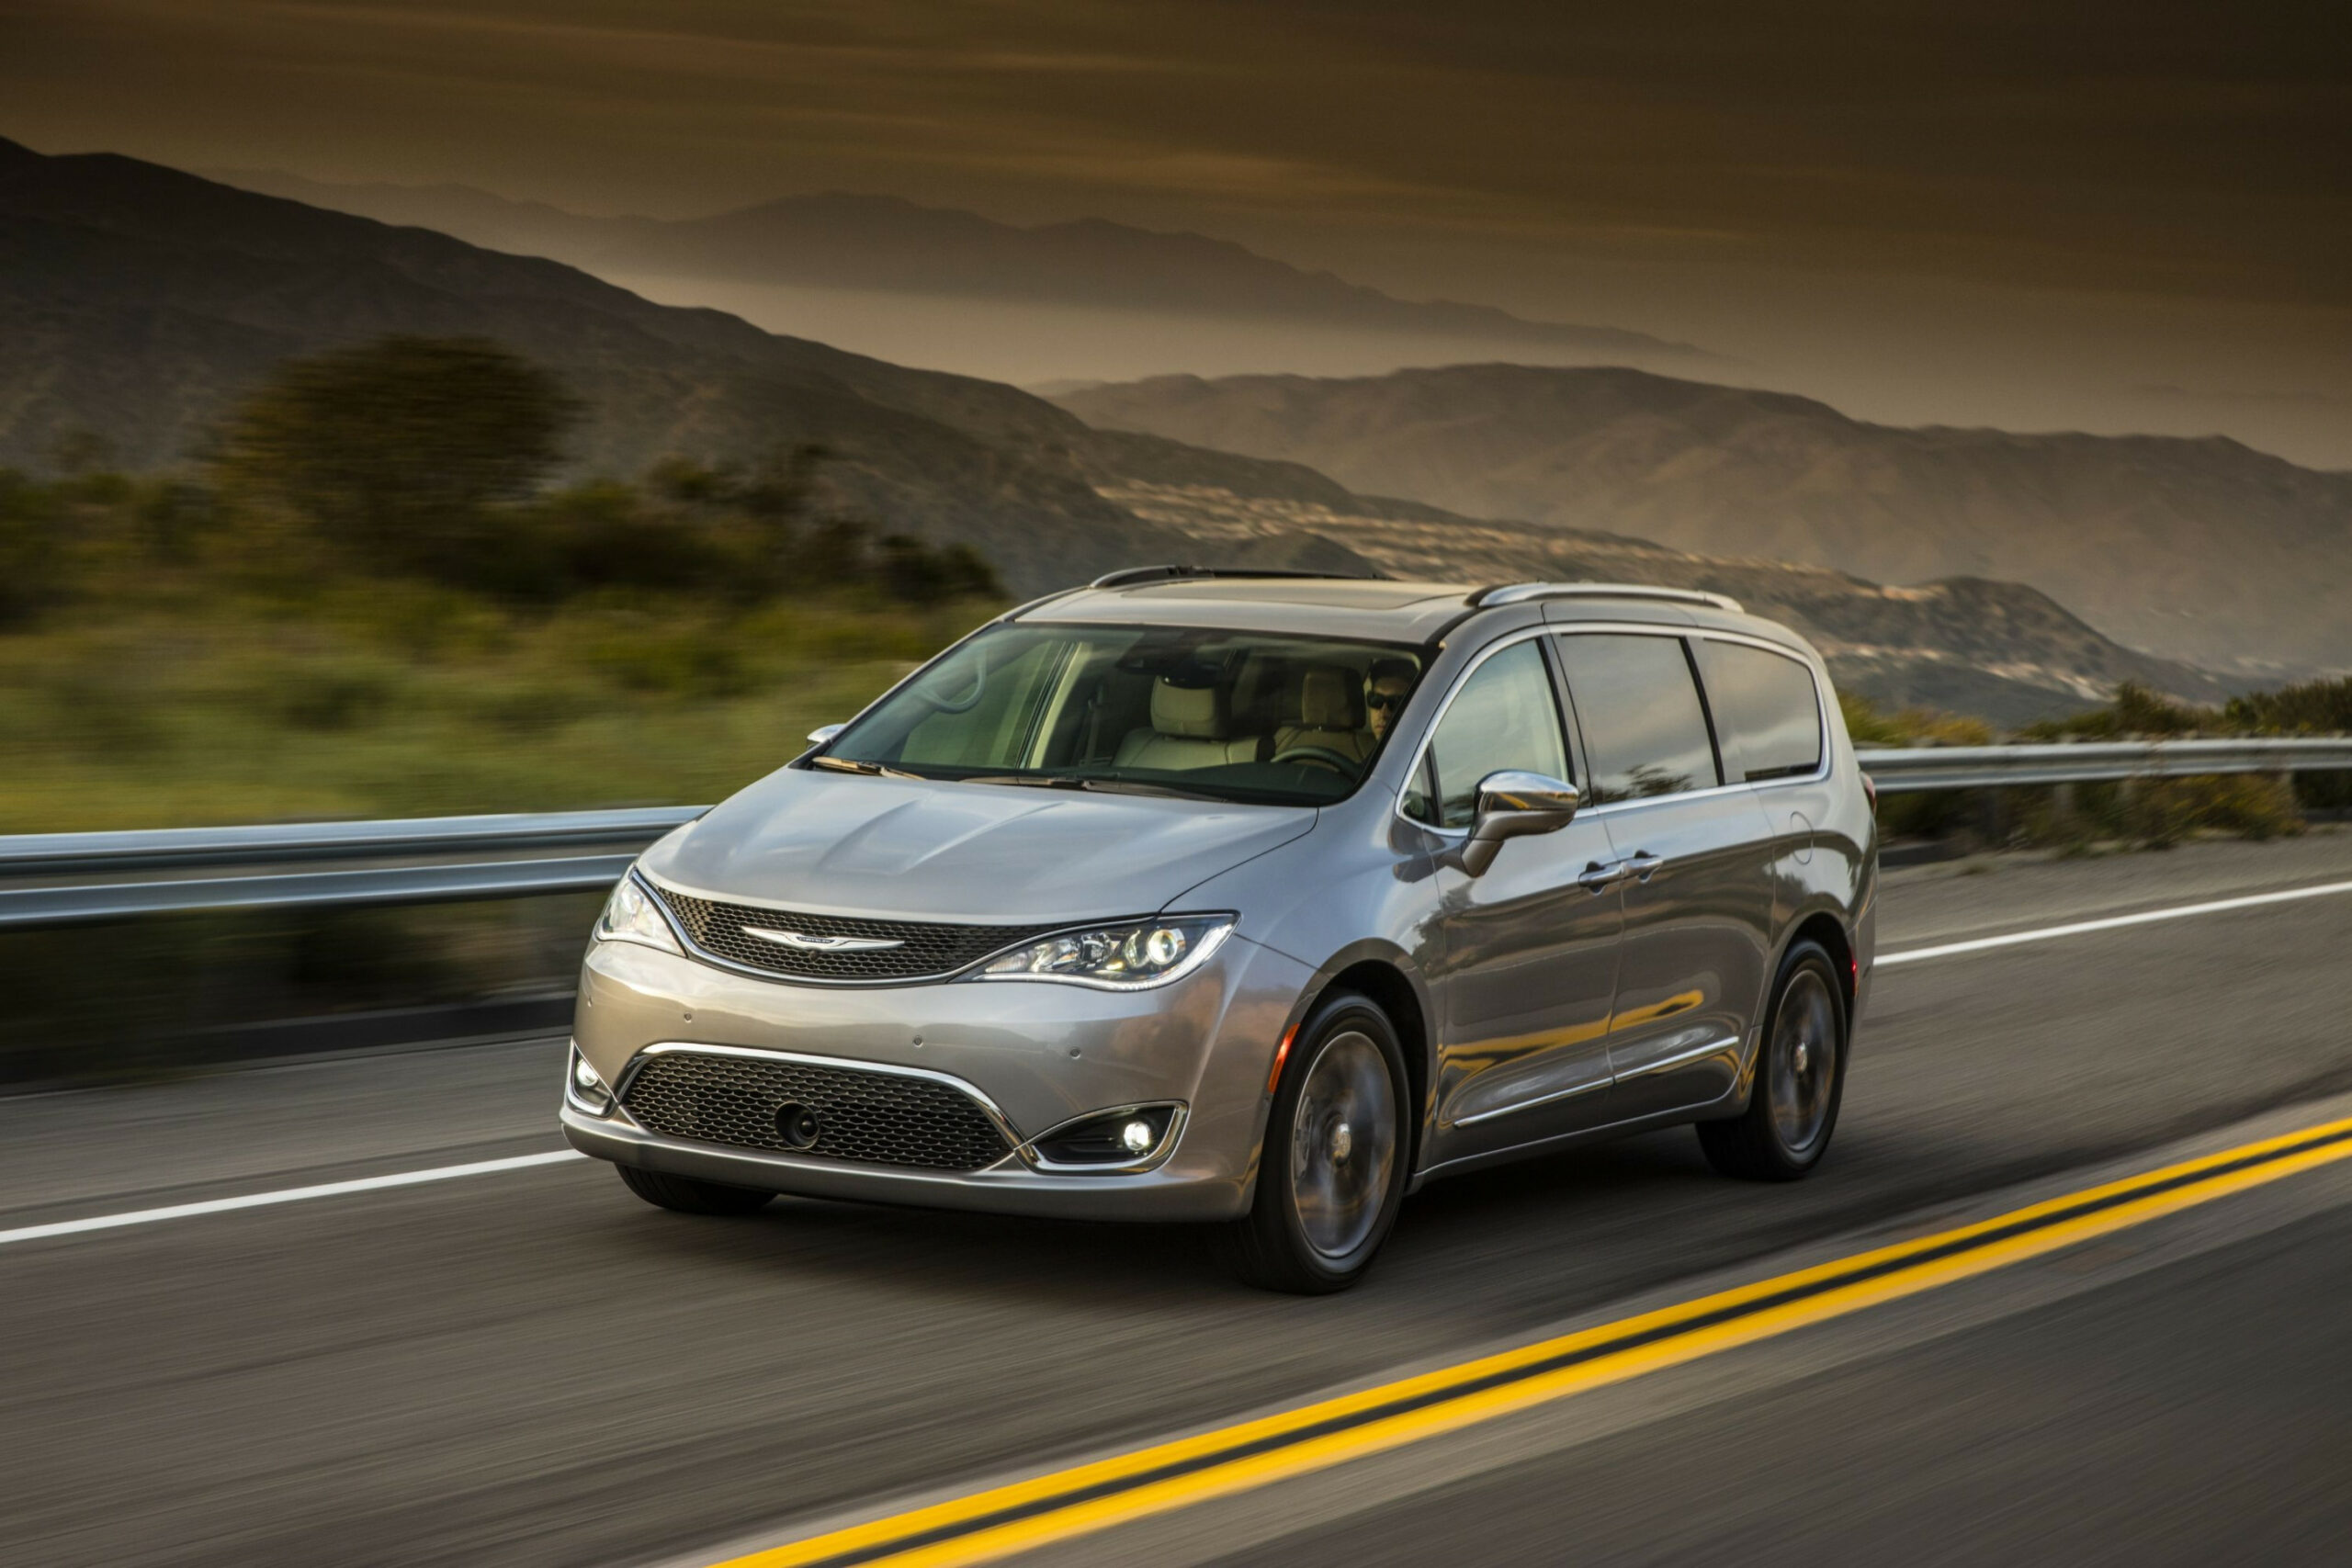 8 Chrysler Pacifica Review, Pricing, and Specs